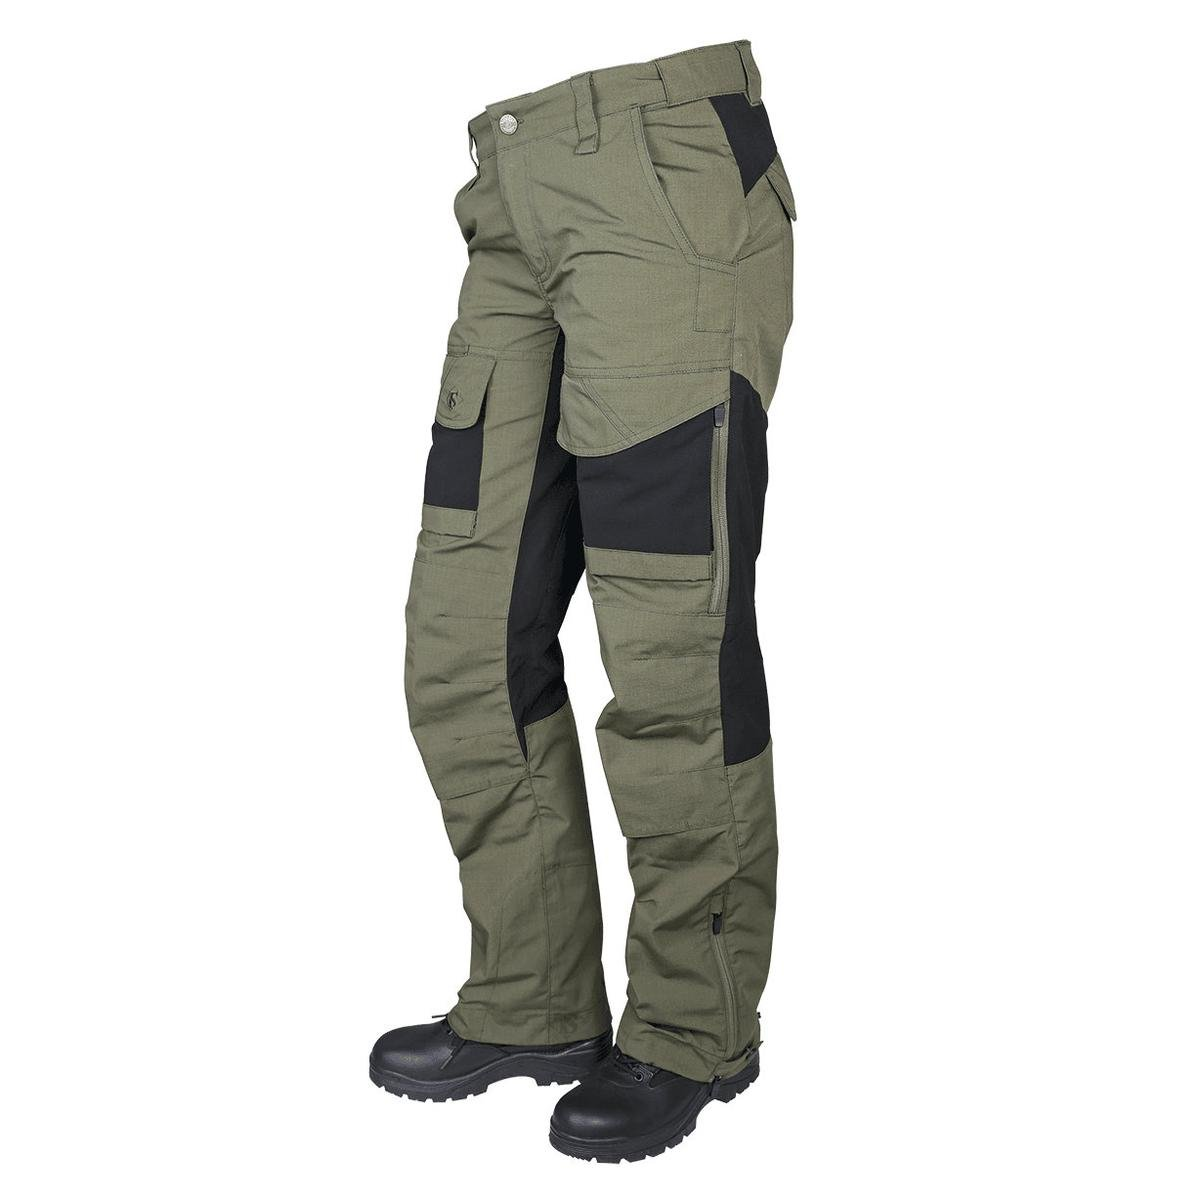 TRU-SPEC Women's Pants, 24-7 Women's Xpedition, Ranger Green/Black, W: 2'' x L: 32'' by Tru-Spec